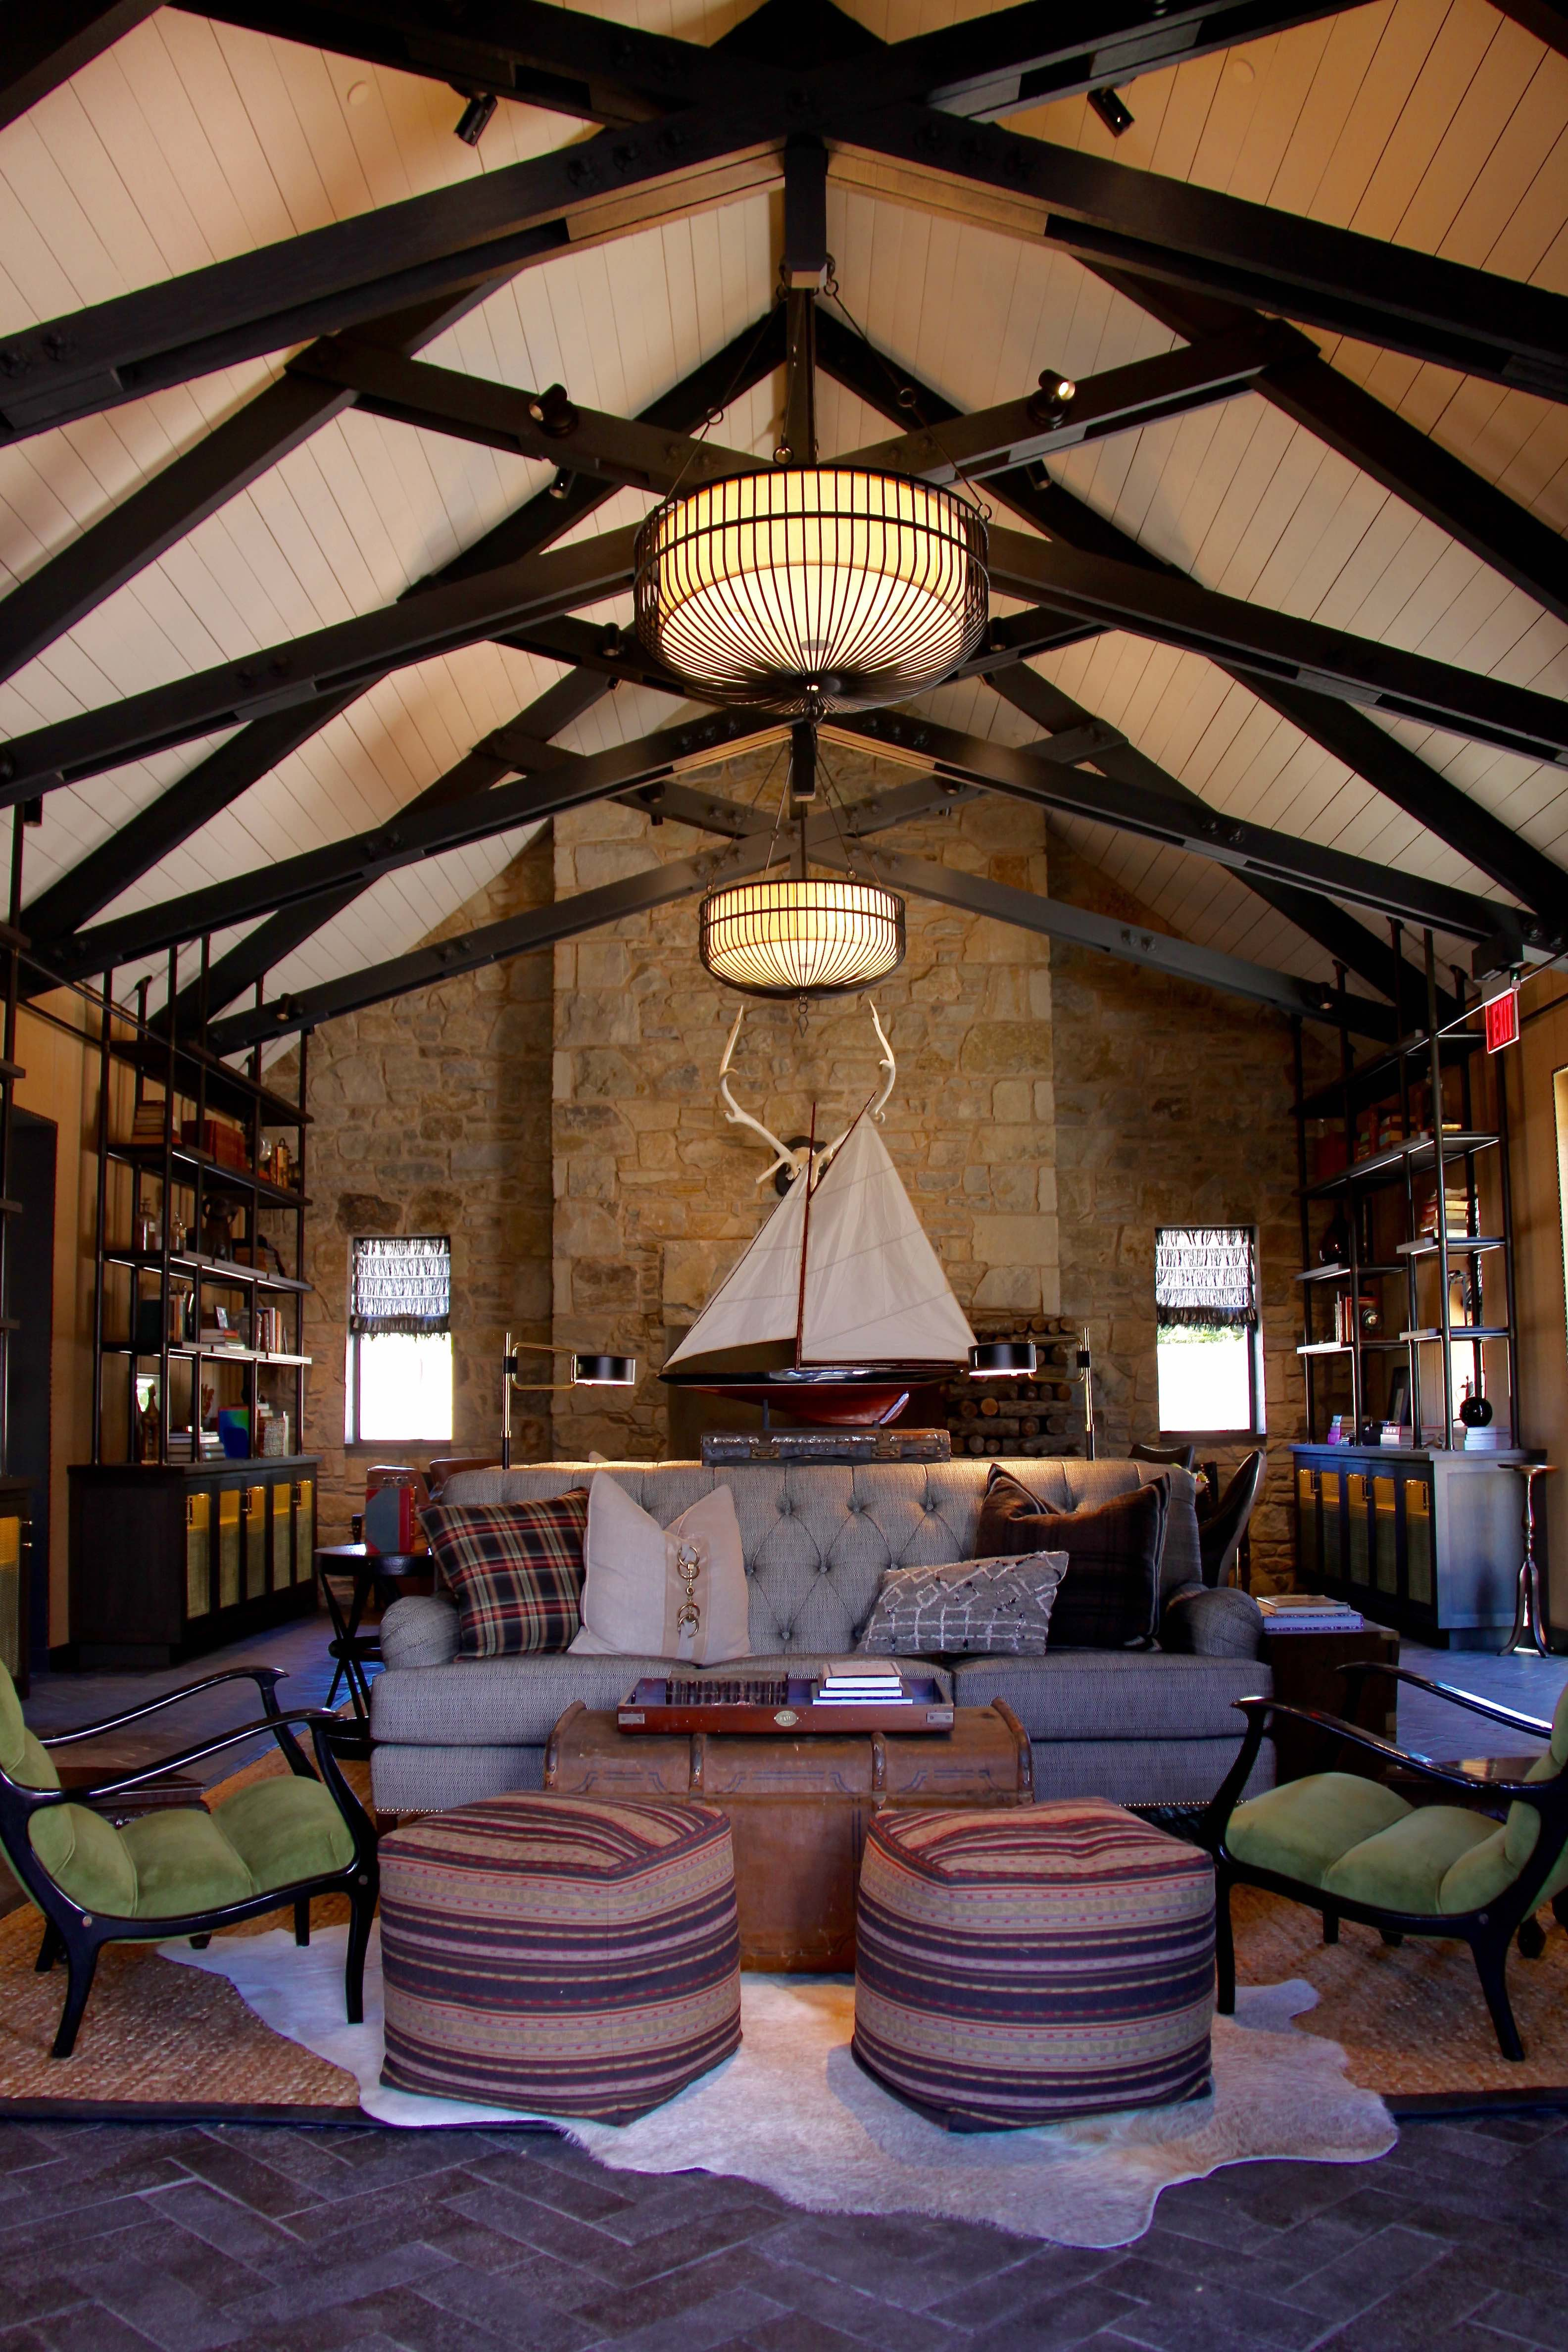 Stewart Cellars Now Welcomes Guests in Yountville